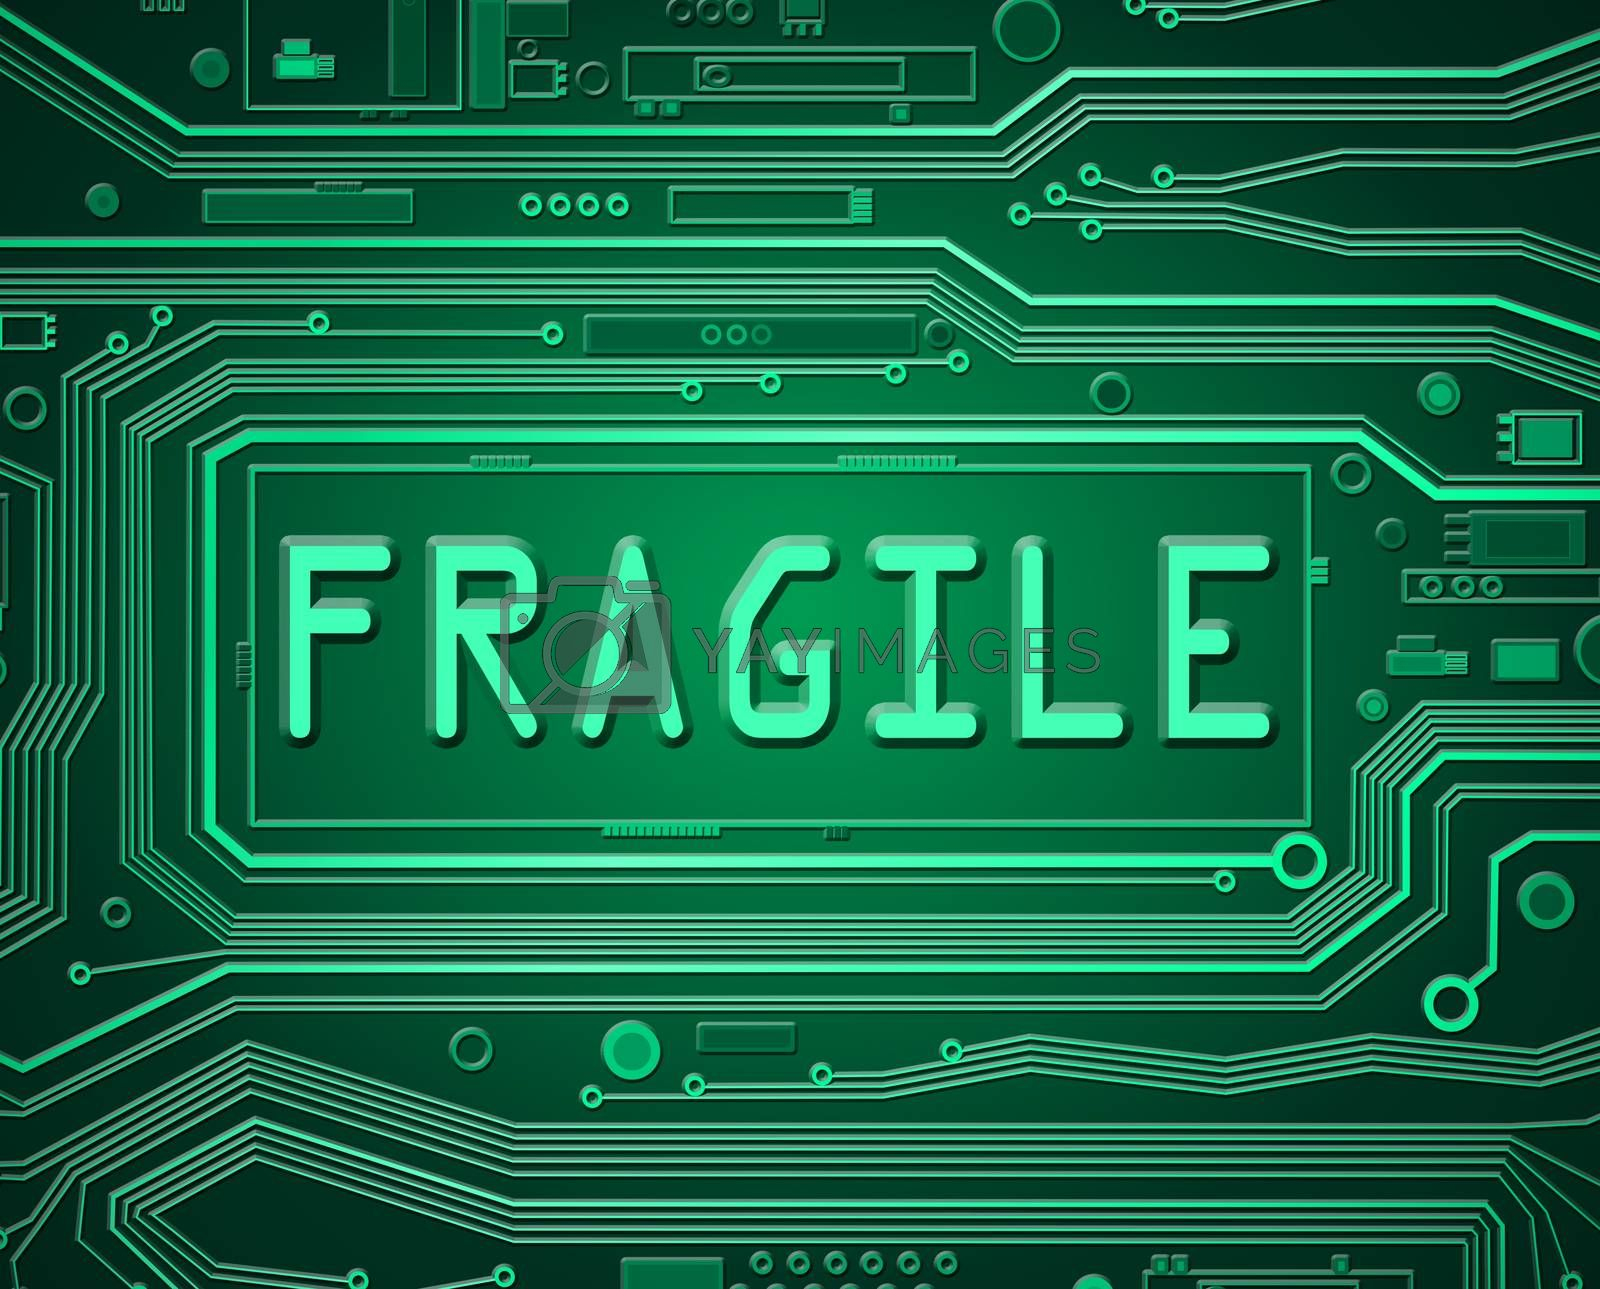 Abstract style illustration depicting printed circuit board components with a fragile concept.